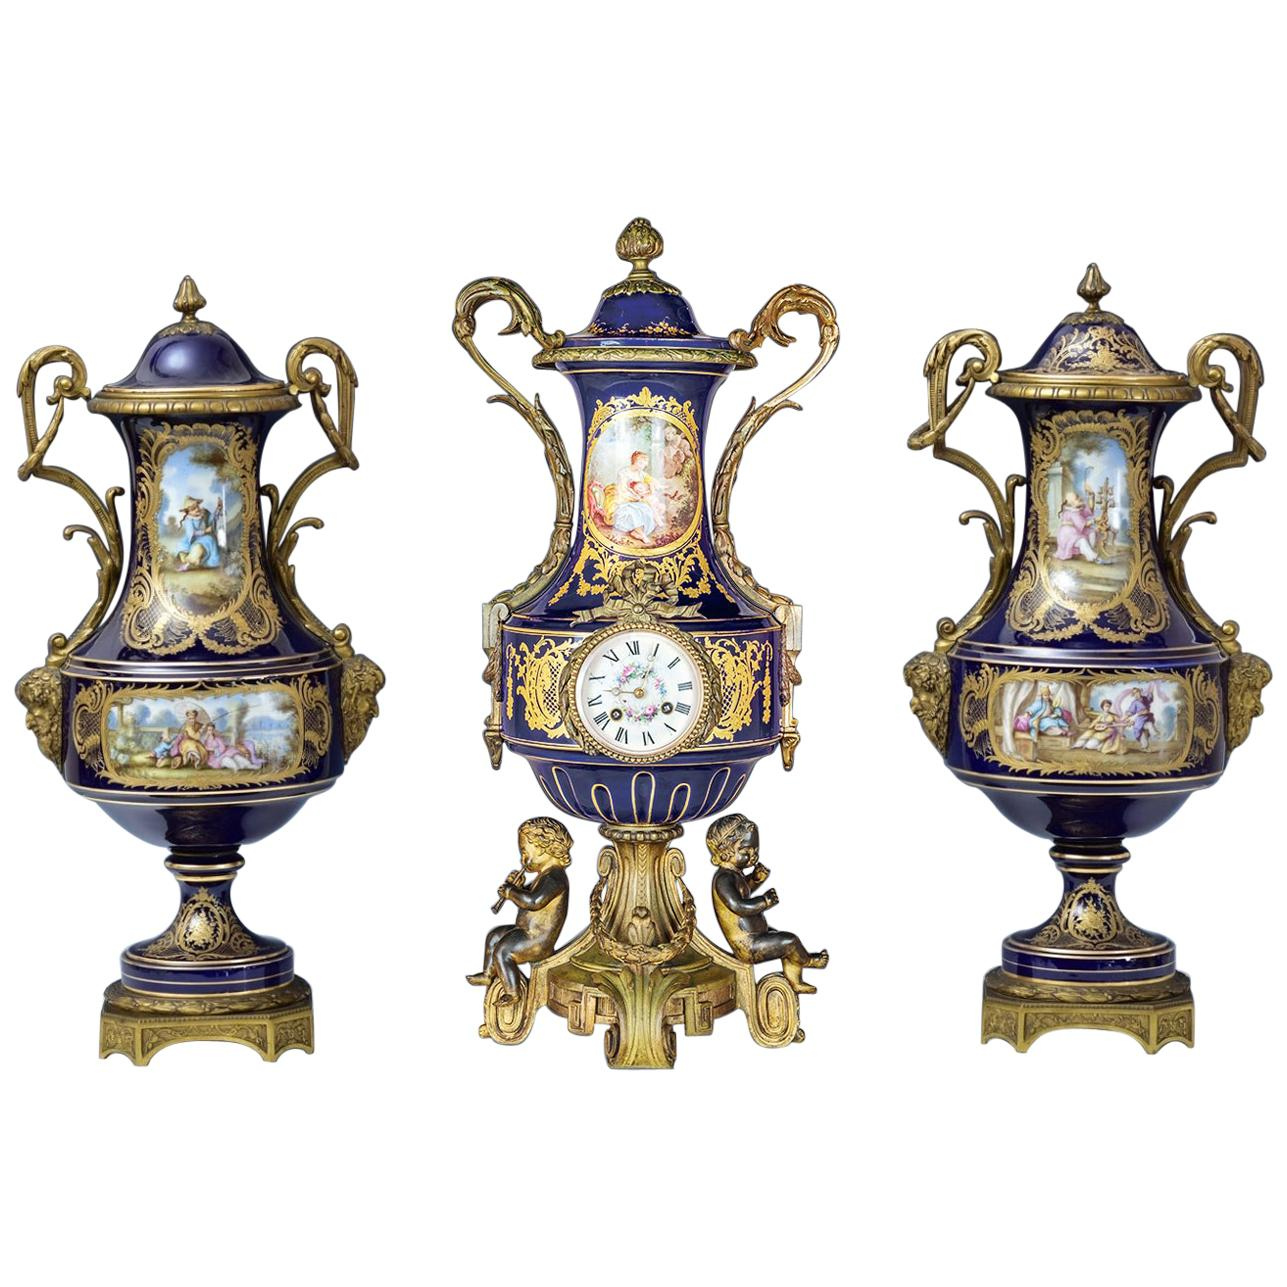 19th Century Sèvres Style Ormolu-Mounted Porcelain Figural Clockset